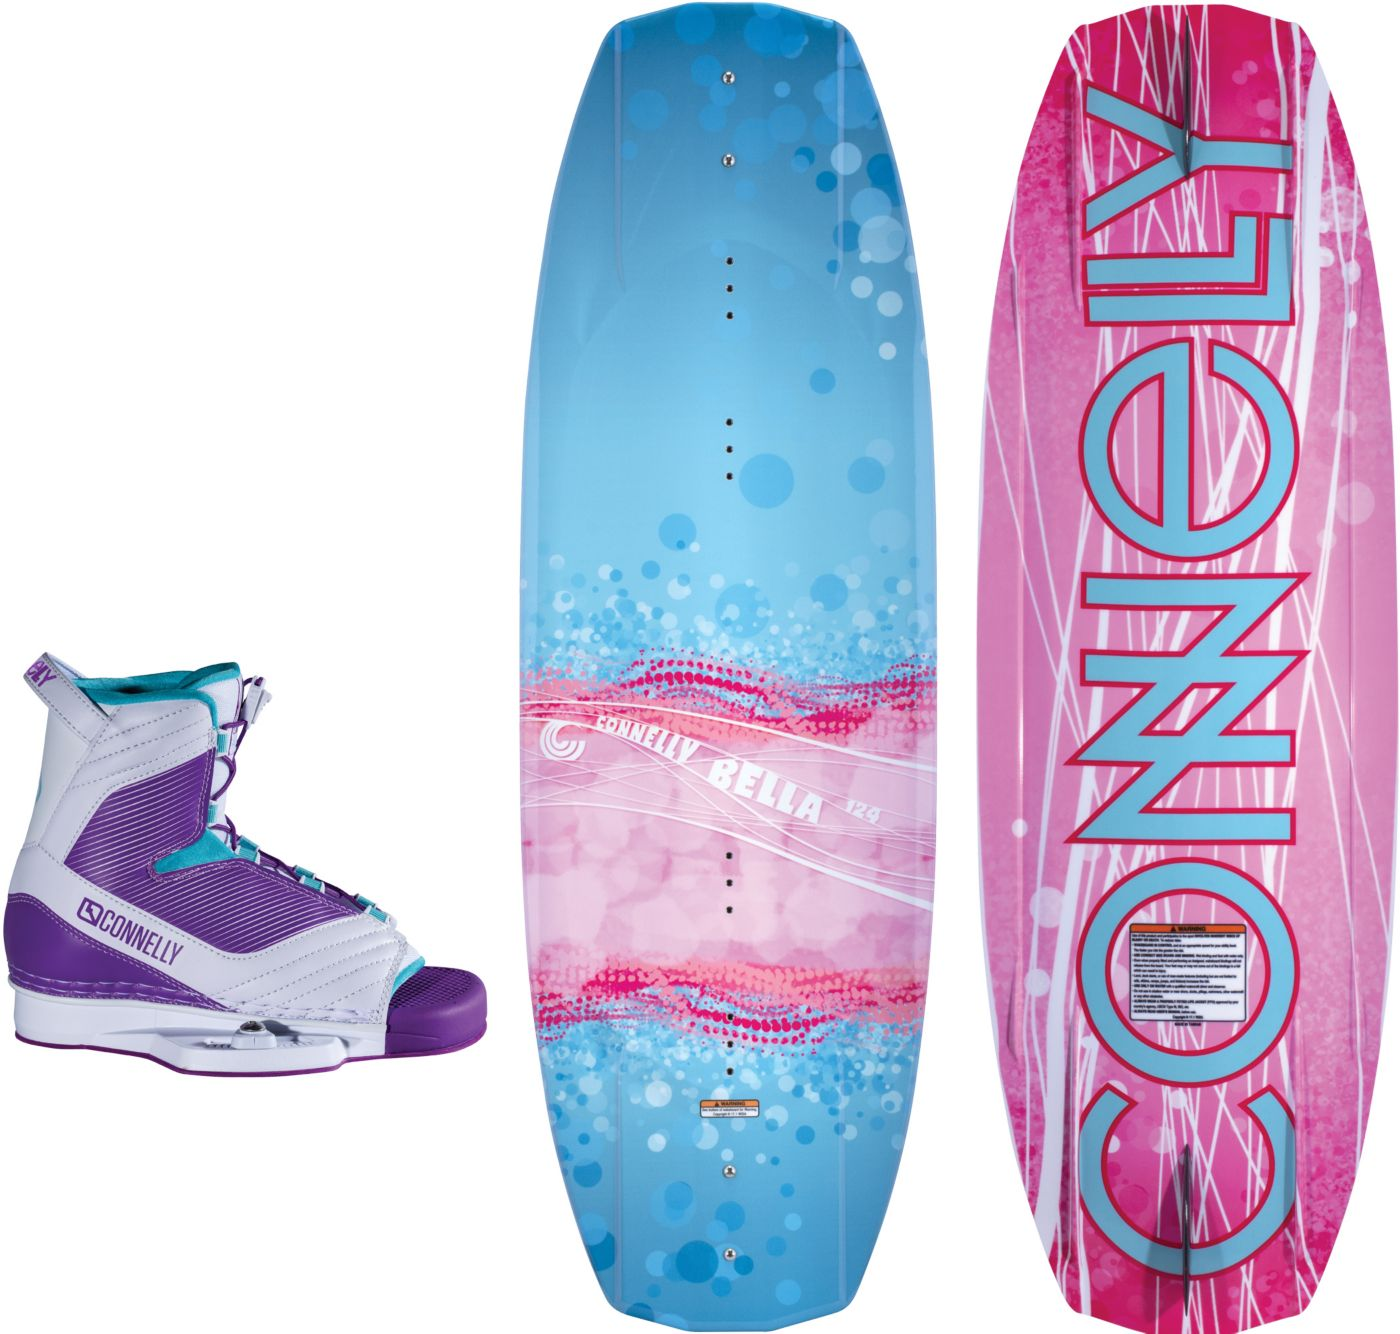 Connelly Youth Bella 124 Wakeboard Combo